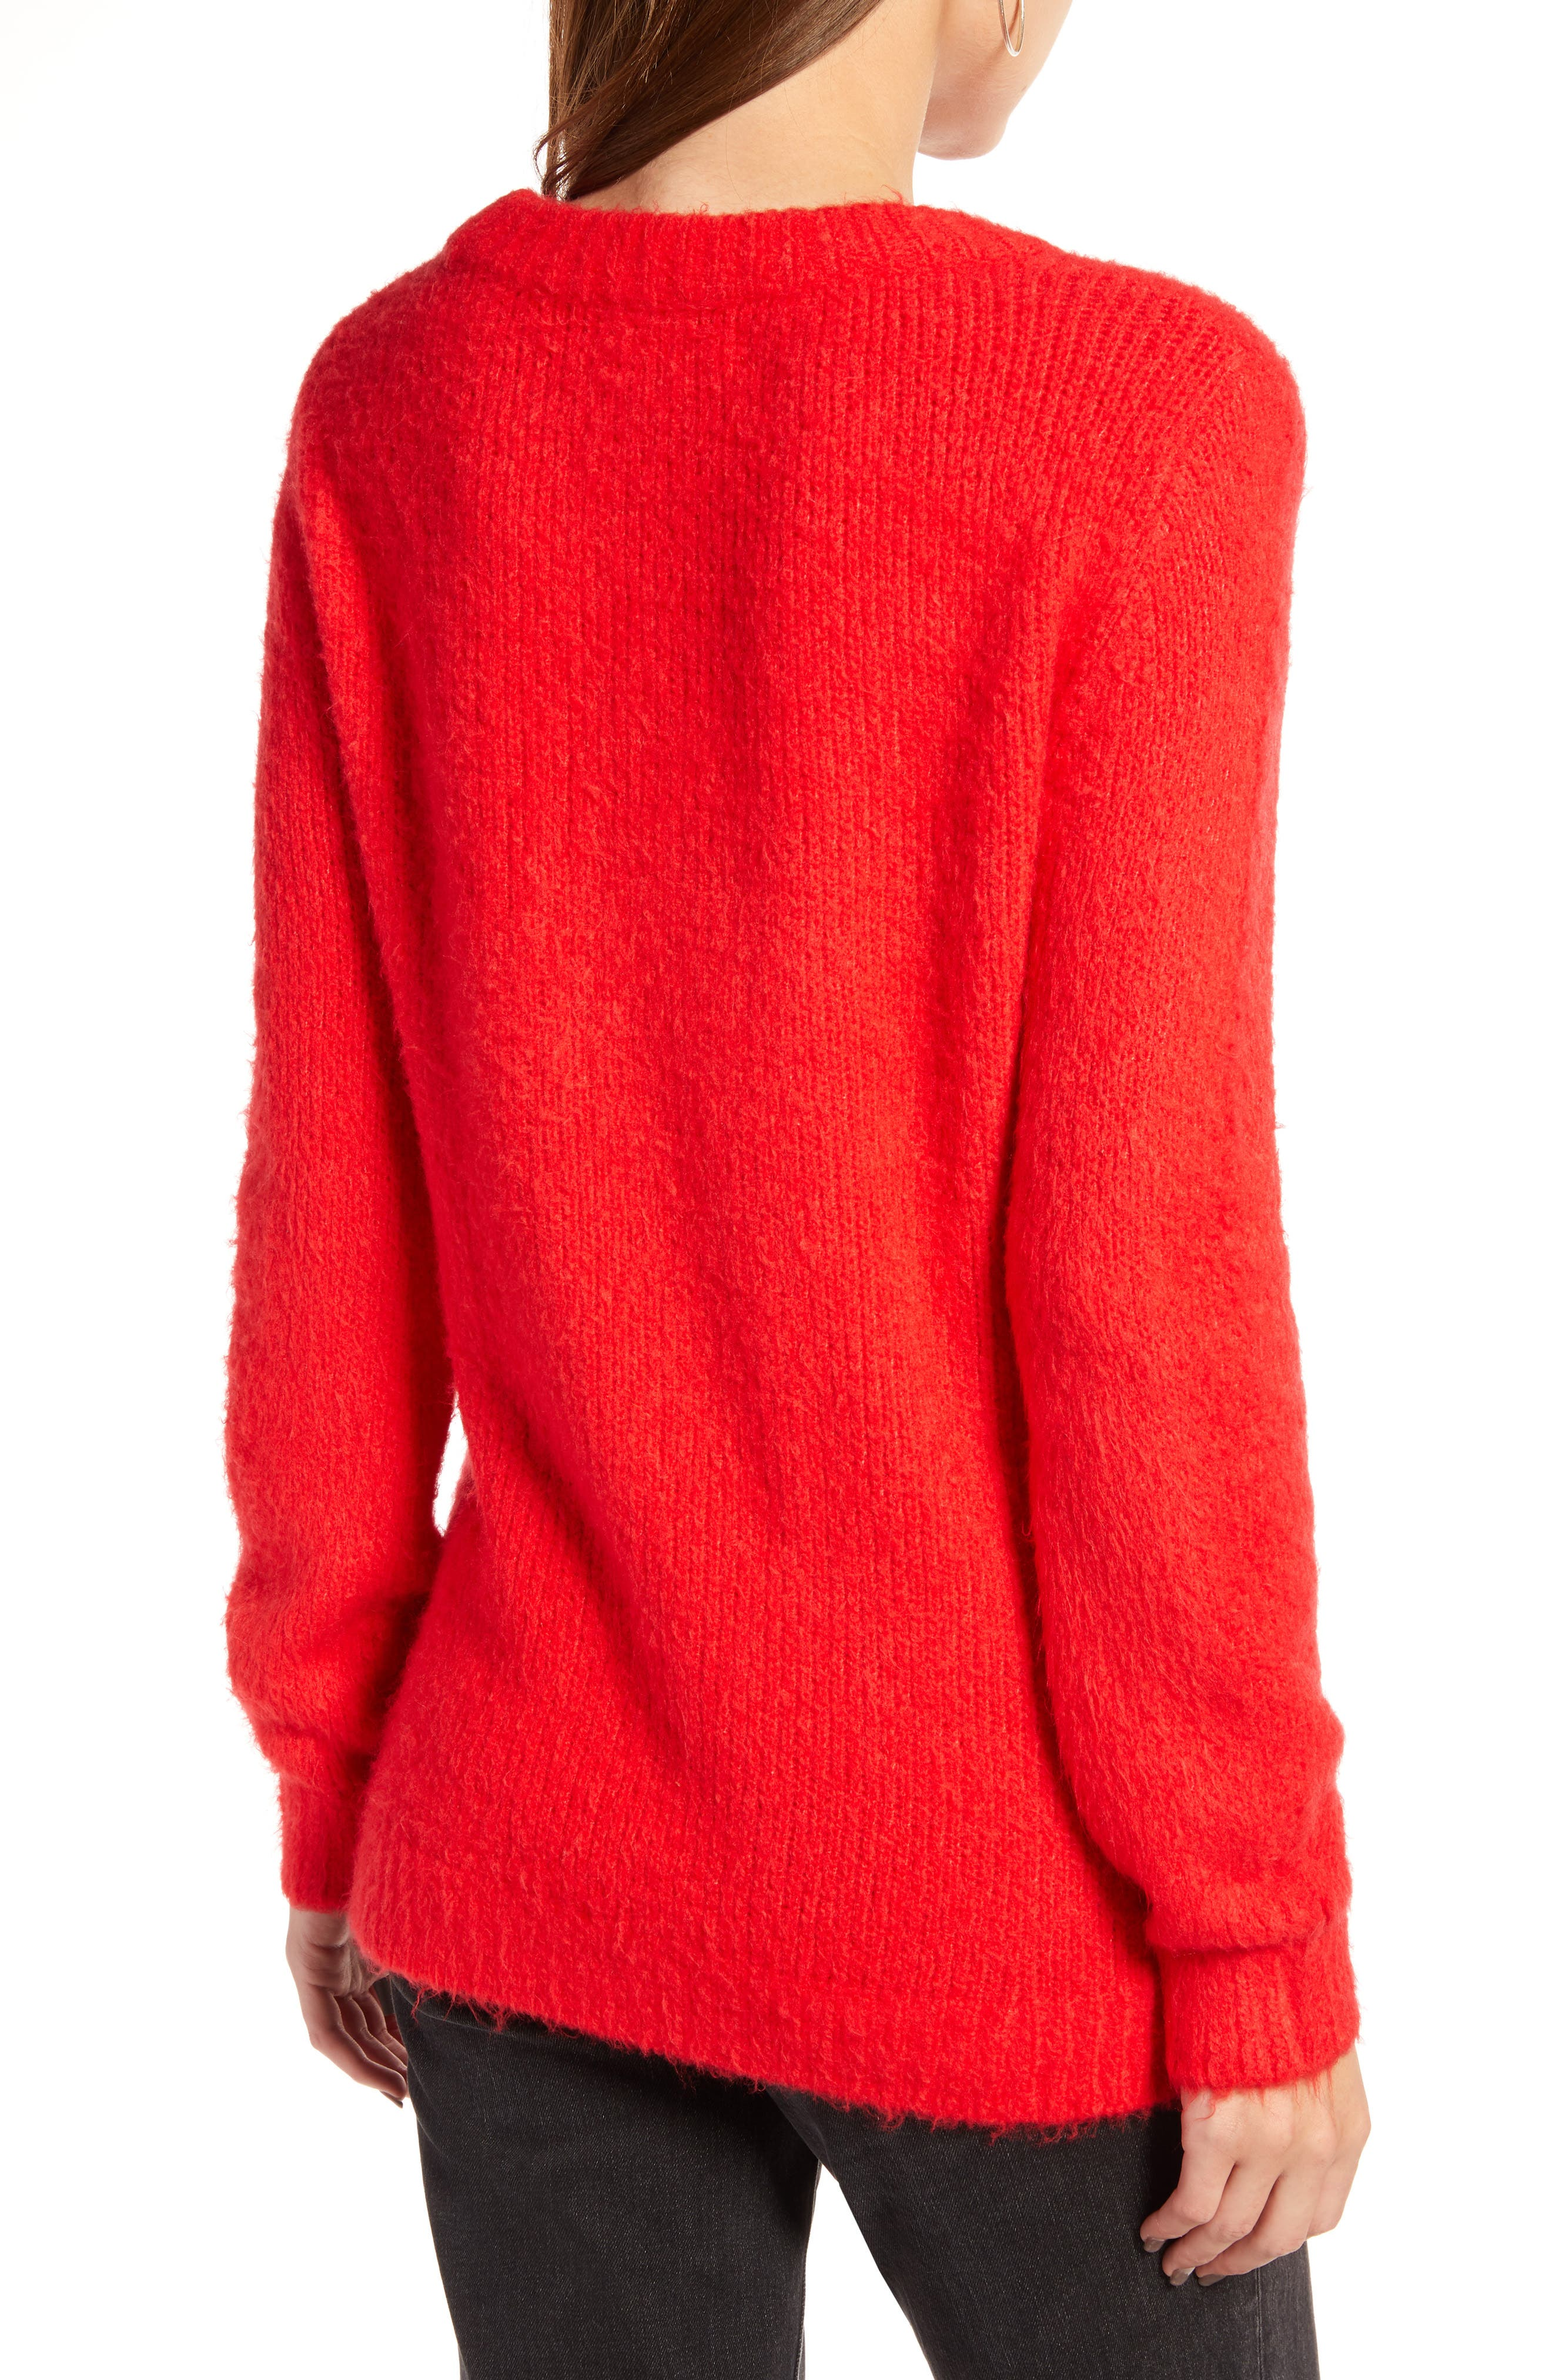 Crewneck Sweater,                             Alternate thumbnail 2, color,                             RED CHINOISE